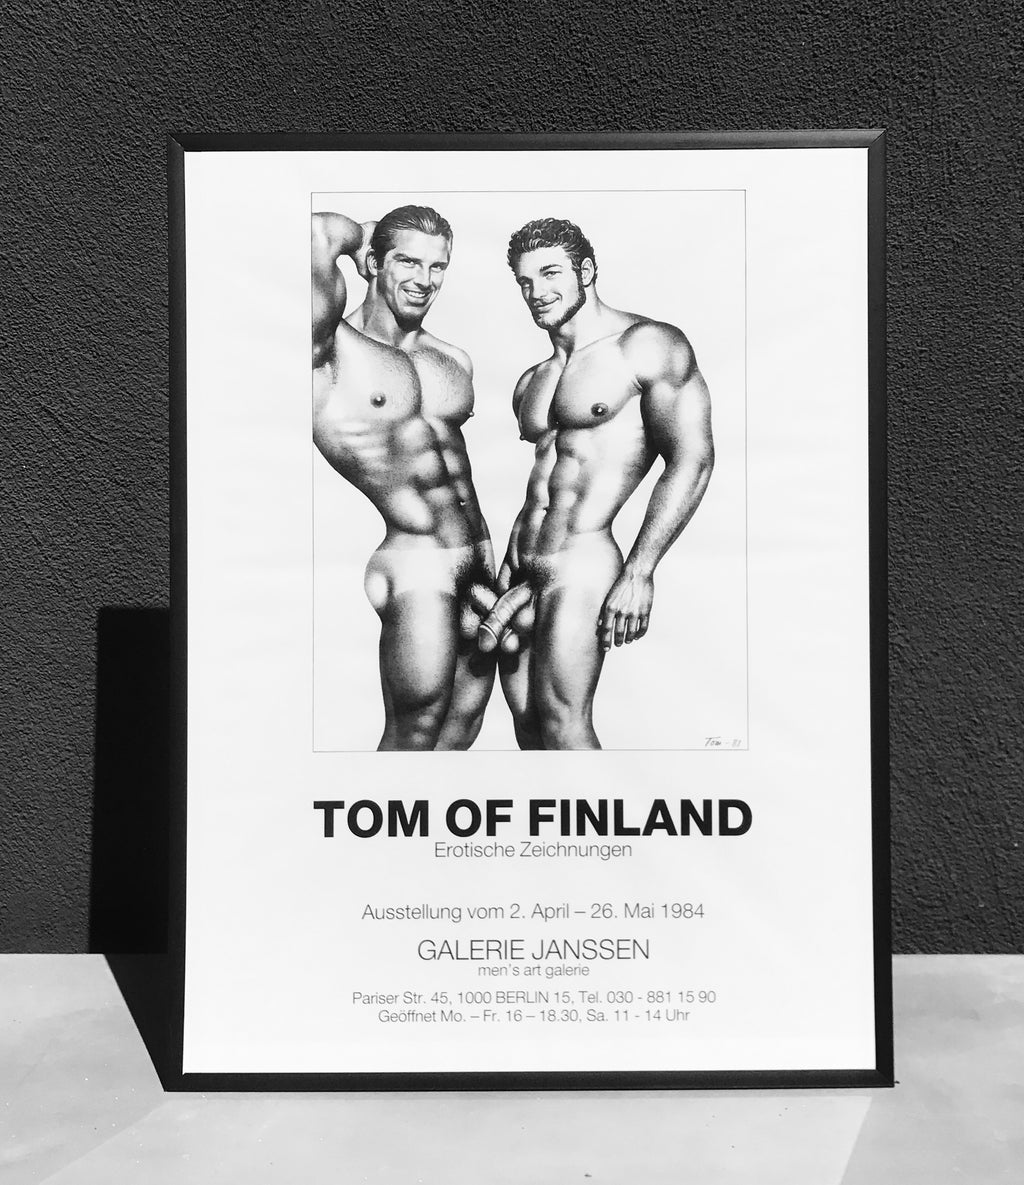 Tom of Finland Vintage 1984 Berlin Exhibition Poster